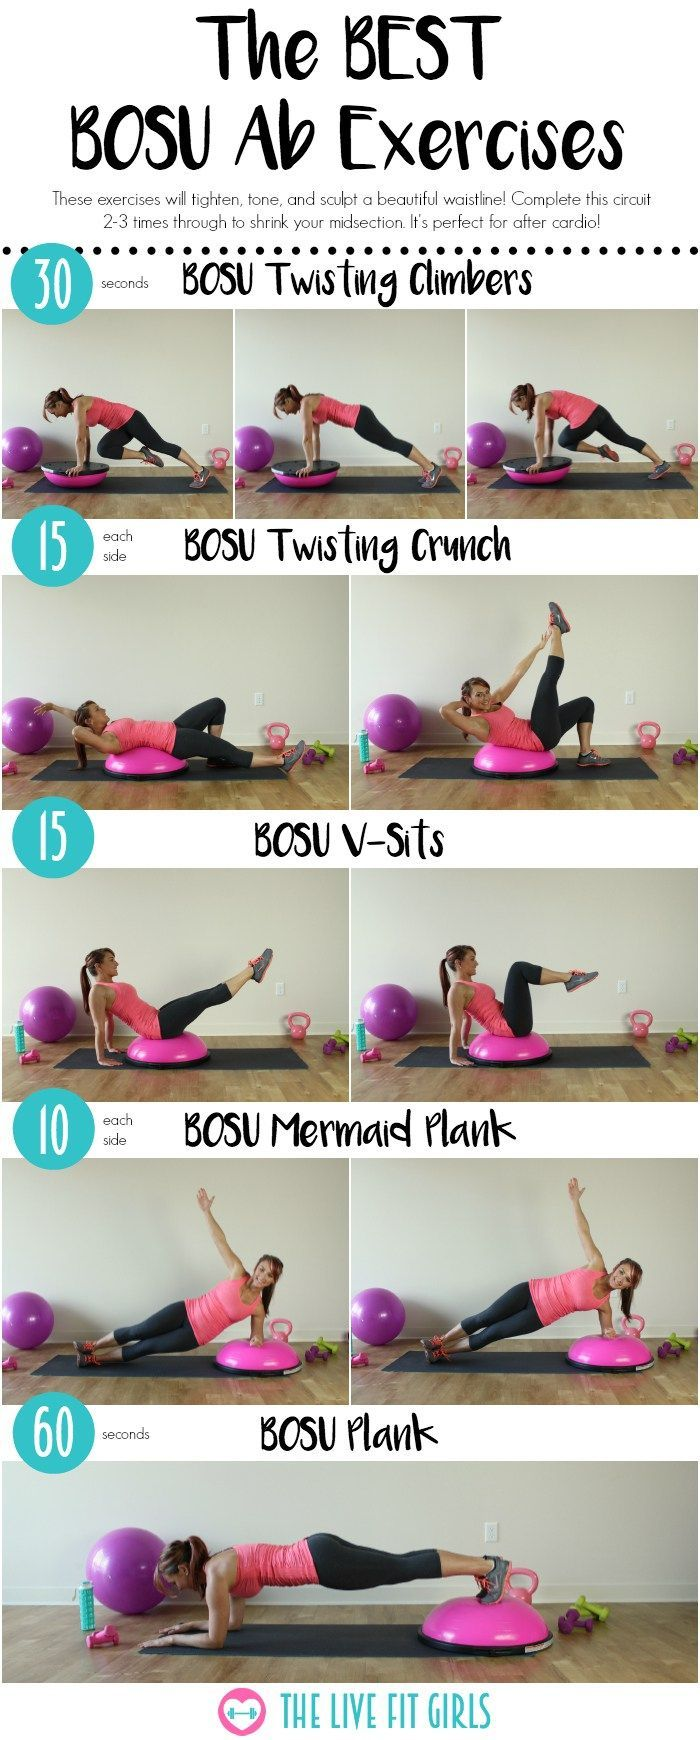 The BEST BOSU Ab Exercises